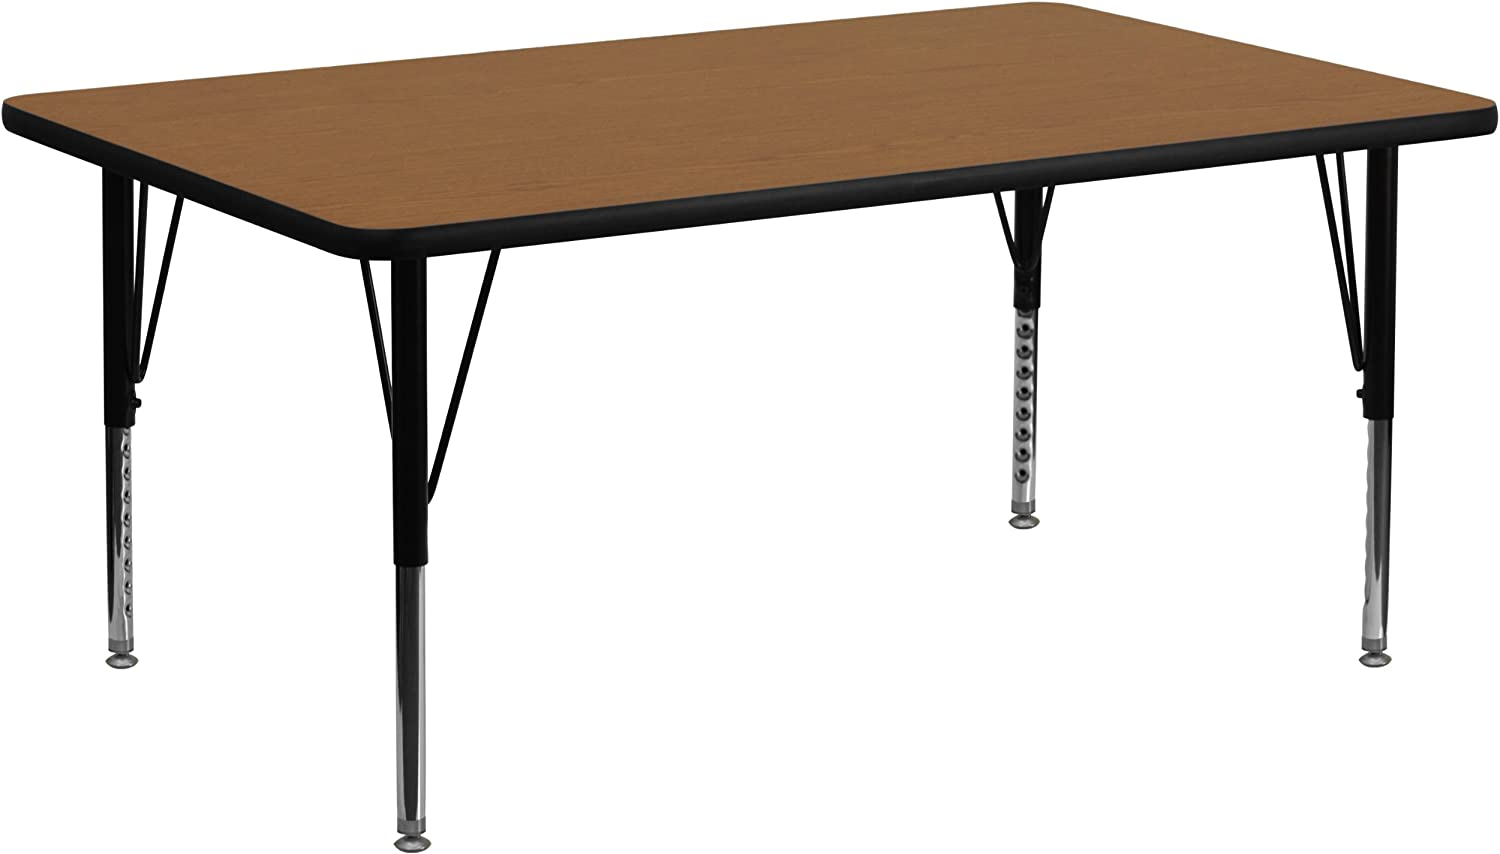 MFO 30W x 72L Rectangular Activity Table with Oak Thermal Fused Laminate Top and Standard Height Adjustable Legs